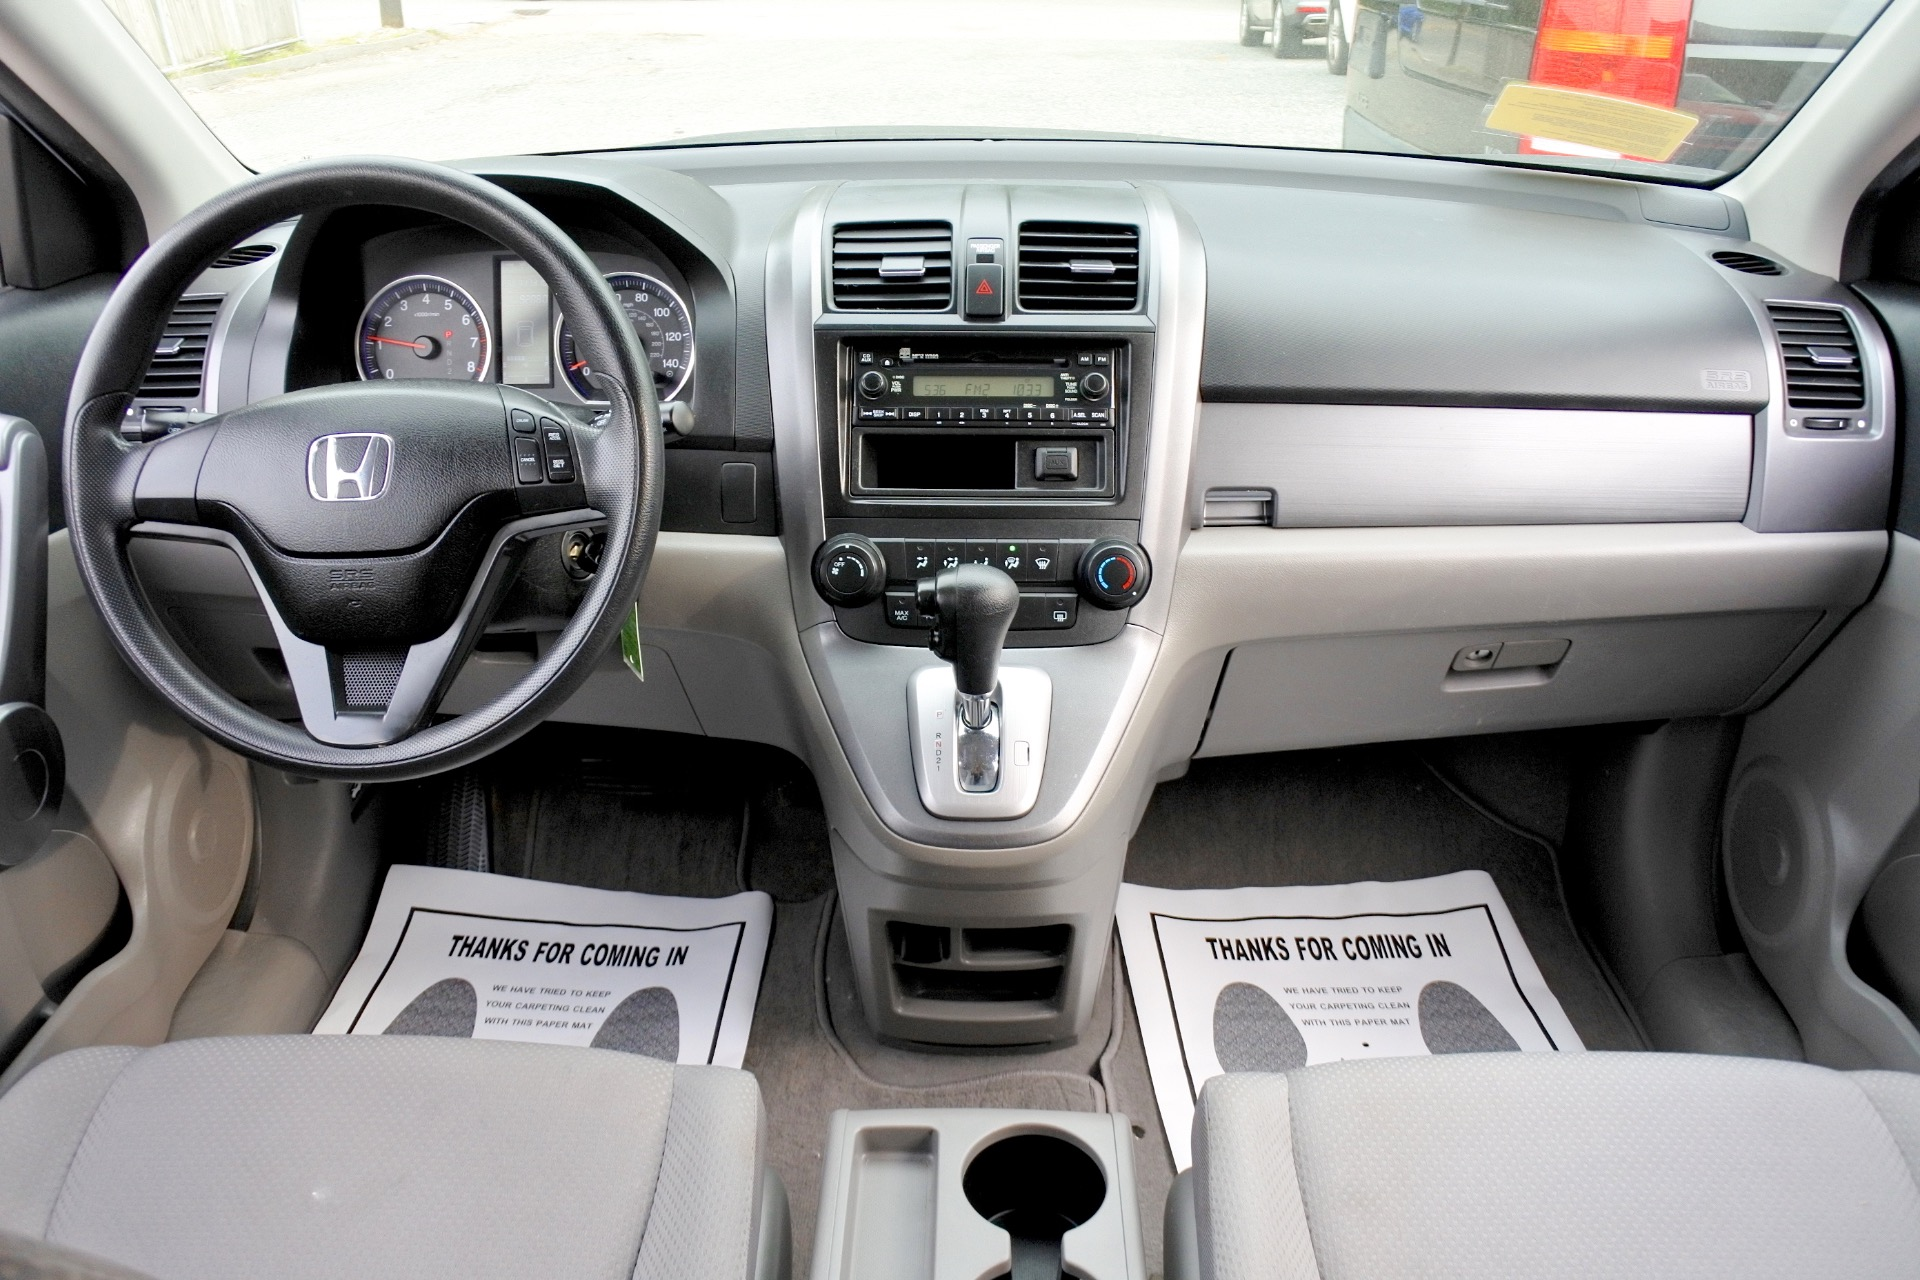 Used 2008 Honda Cr-v 4WD 5dr LX Used 2008 Honda Cr-v 4WD 5dr LX for sale  at Metro West Motorcars LLC in Shrewsbury MA 9